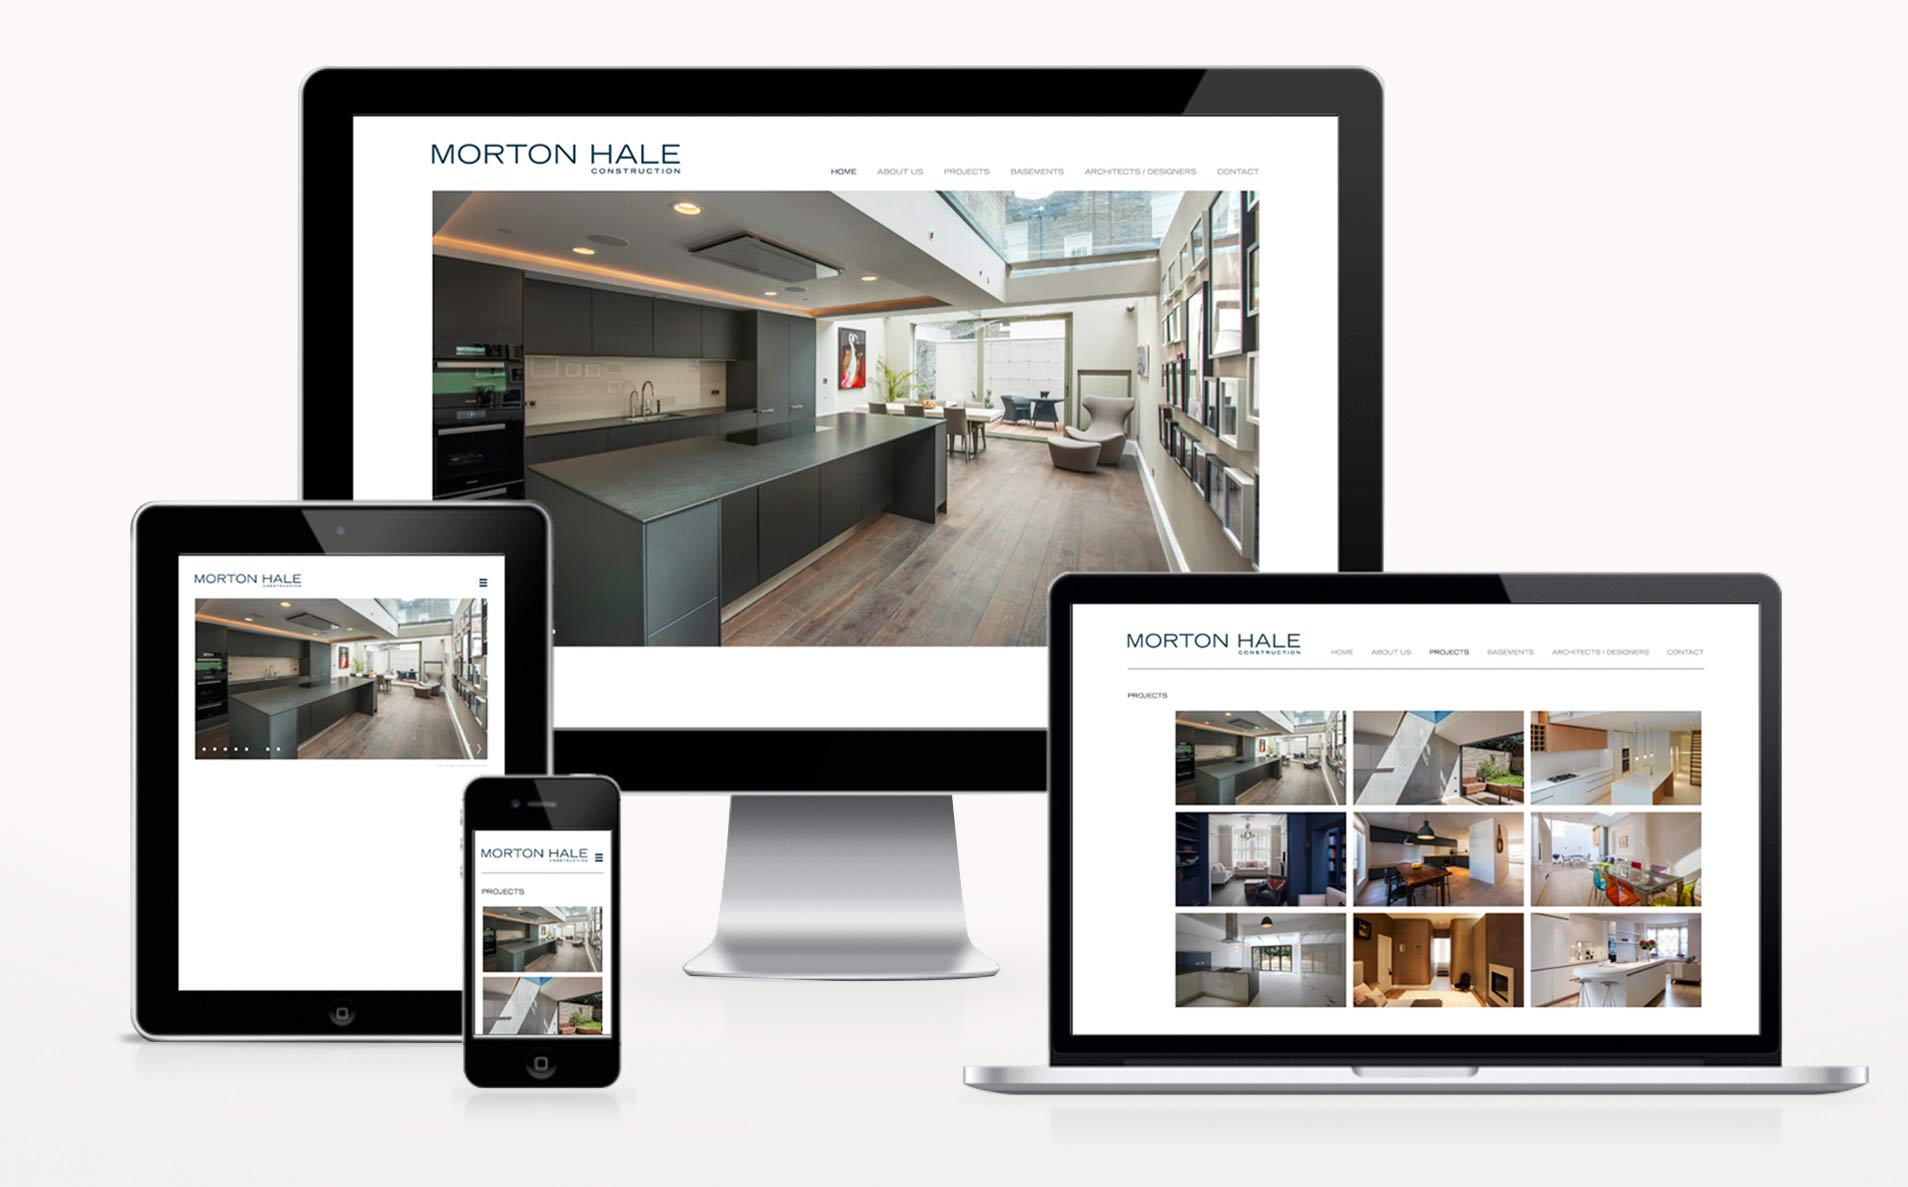 Morton Hale-website-design